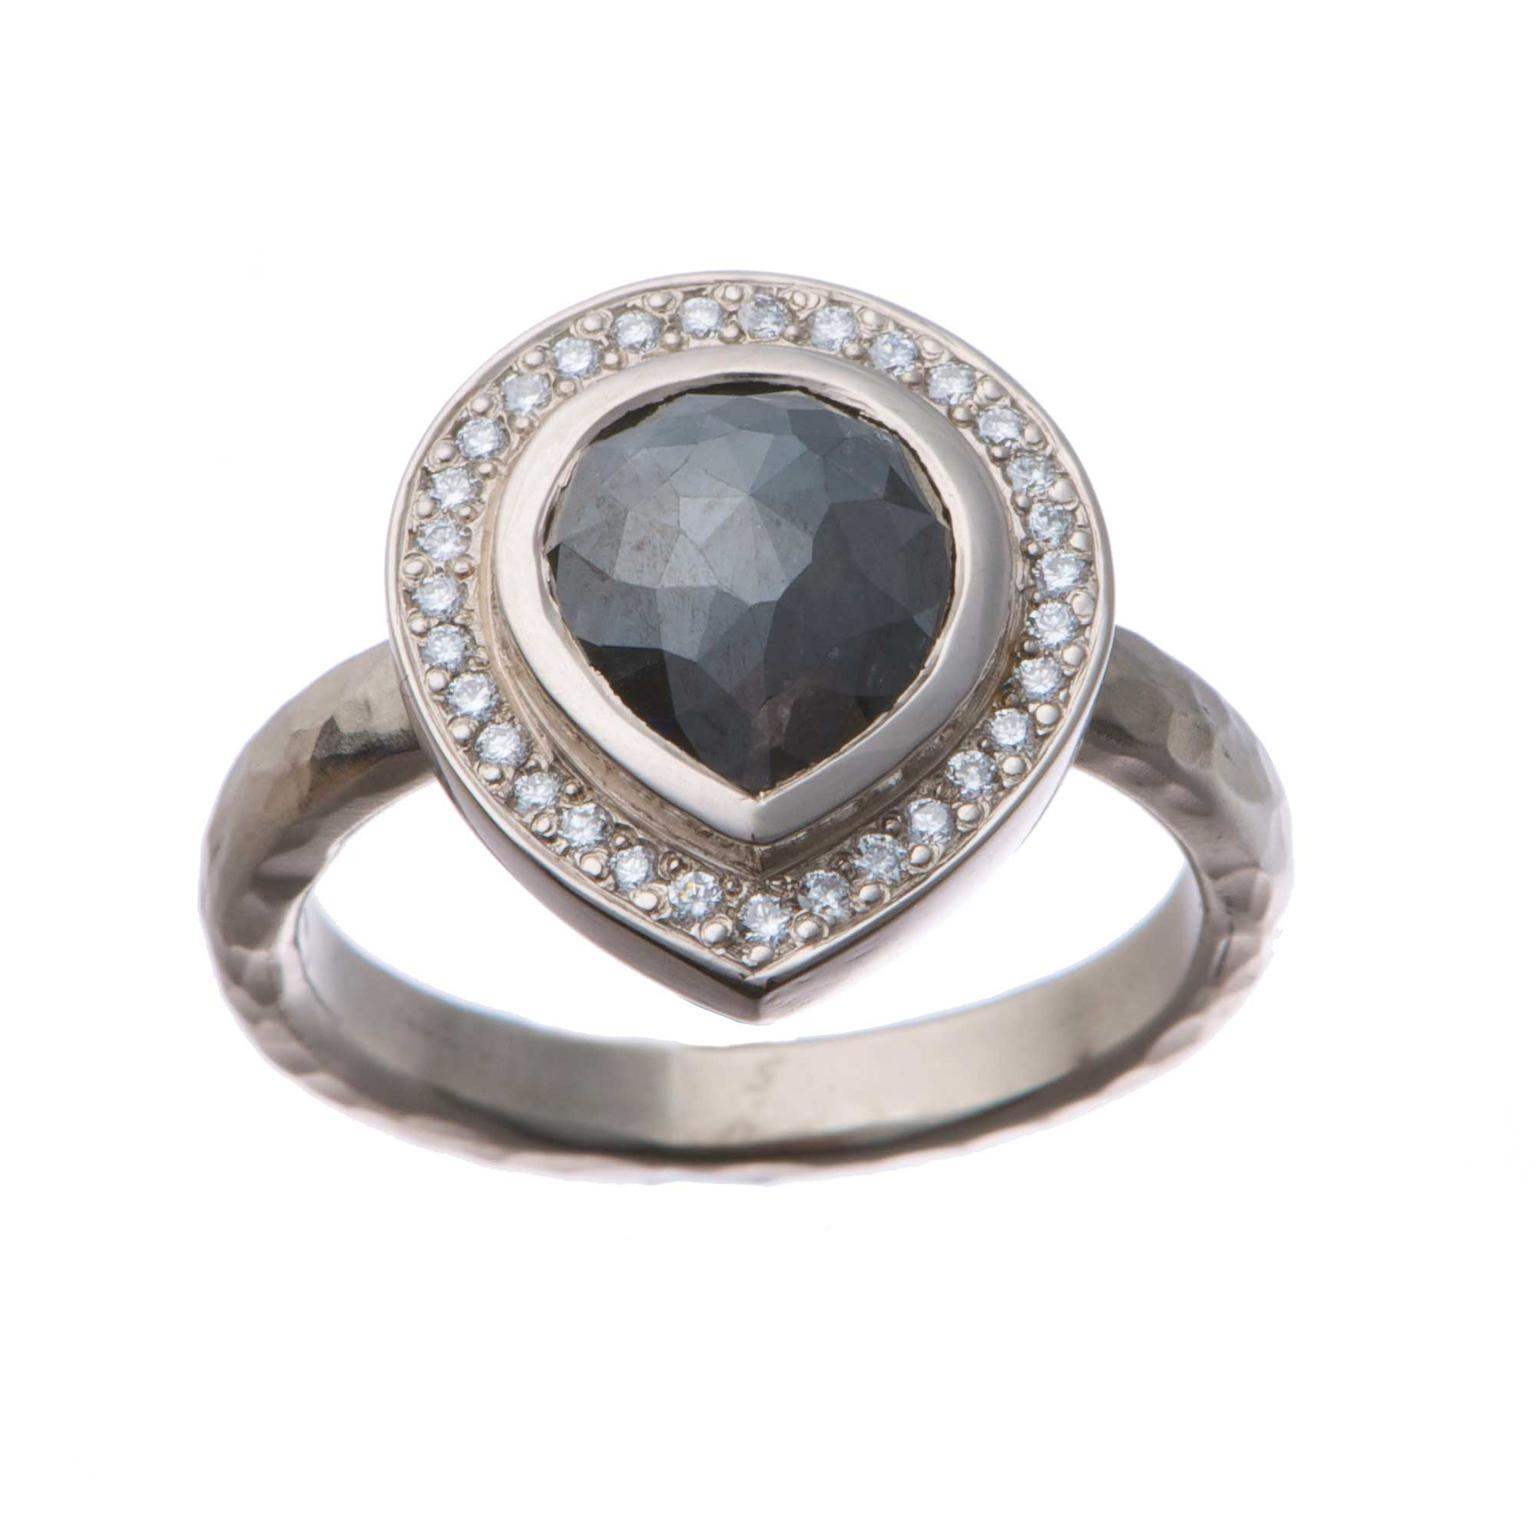 Alexis Dove Lydia charcoal grey diamond engagement ring